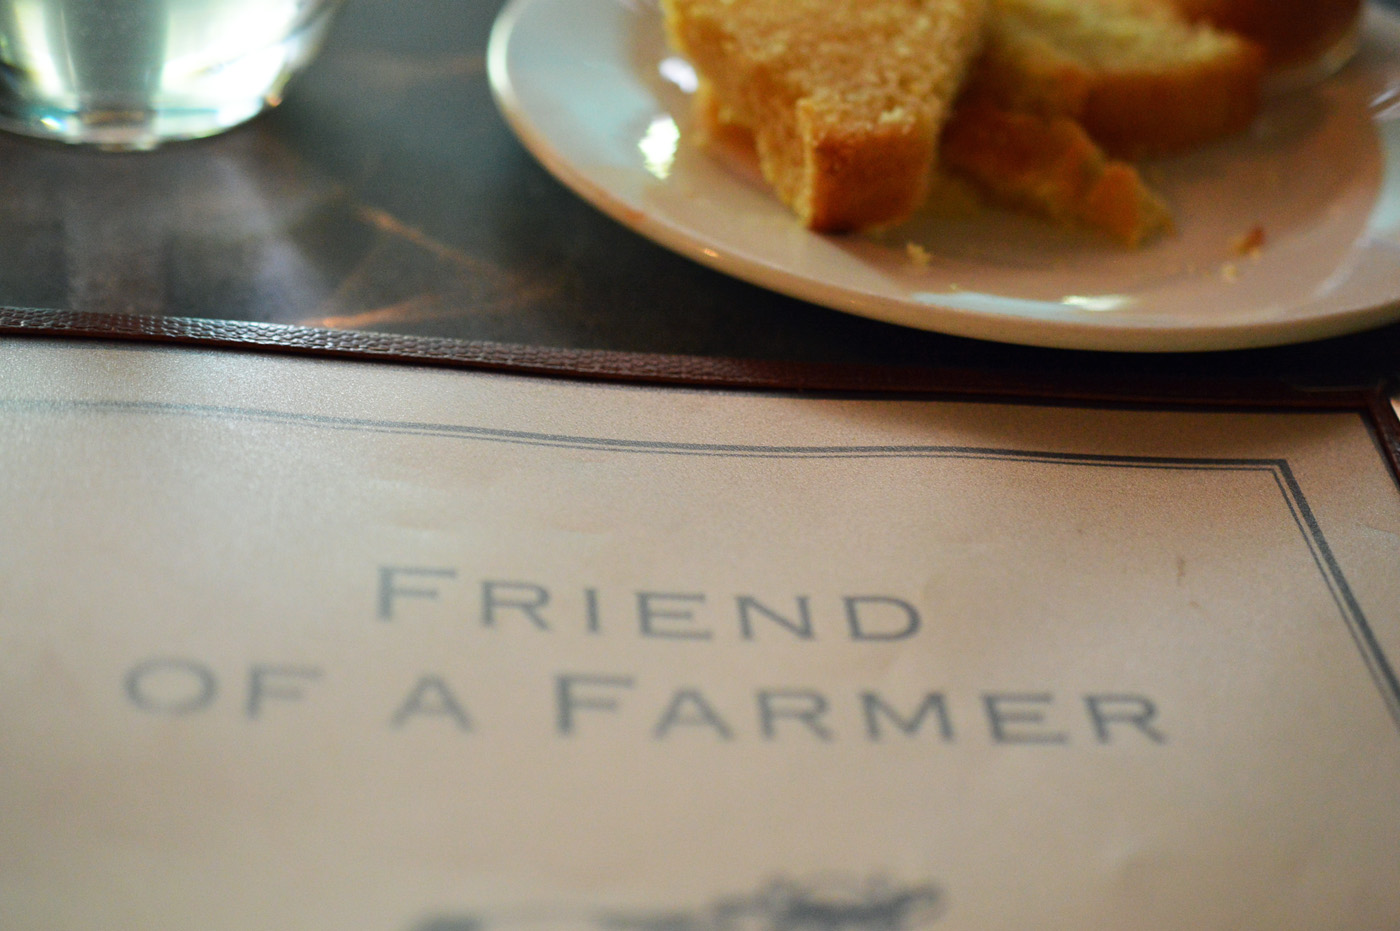 Friend of a Farmer Menu